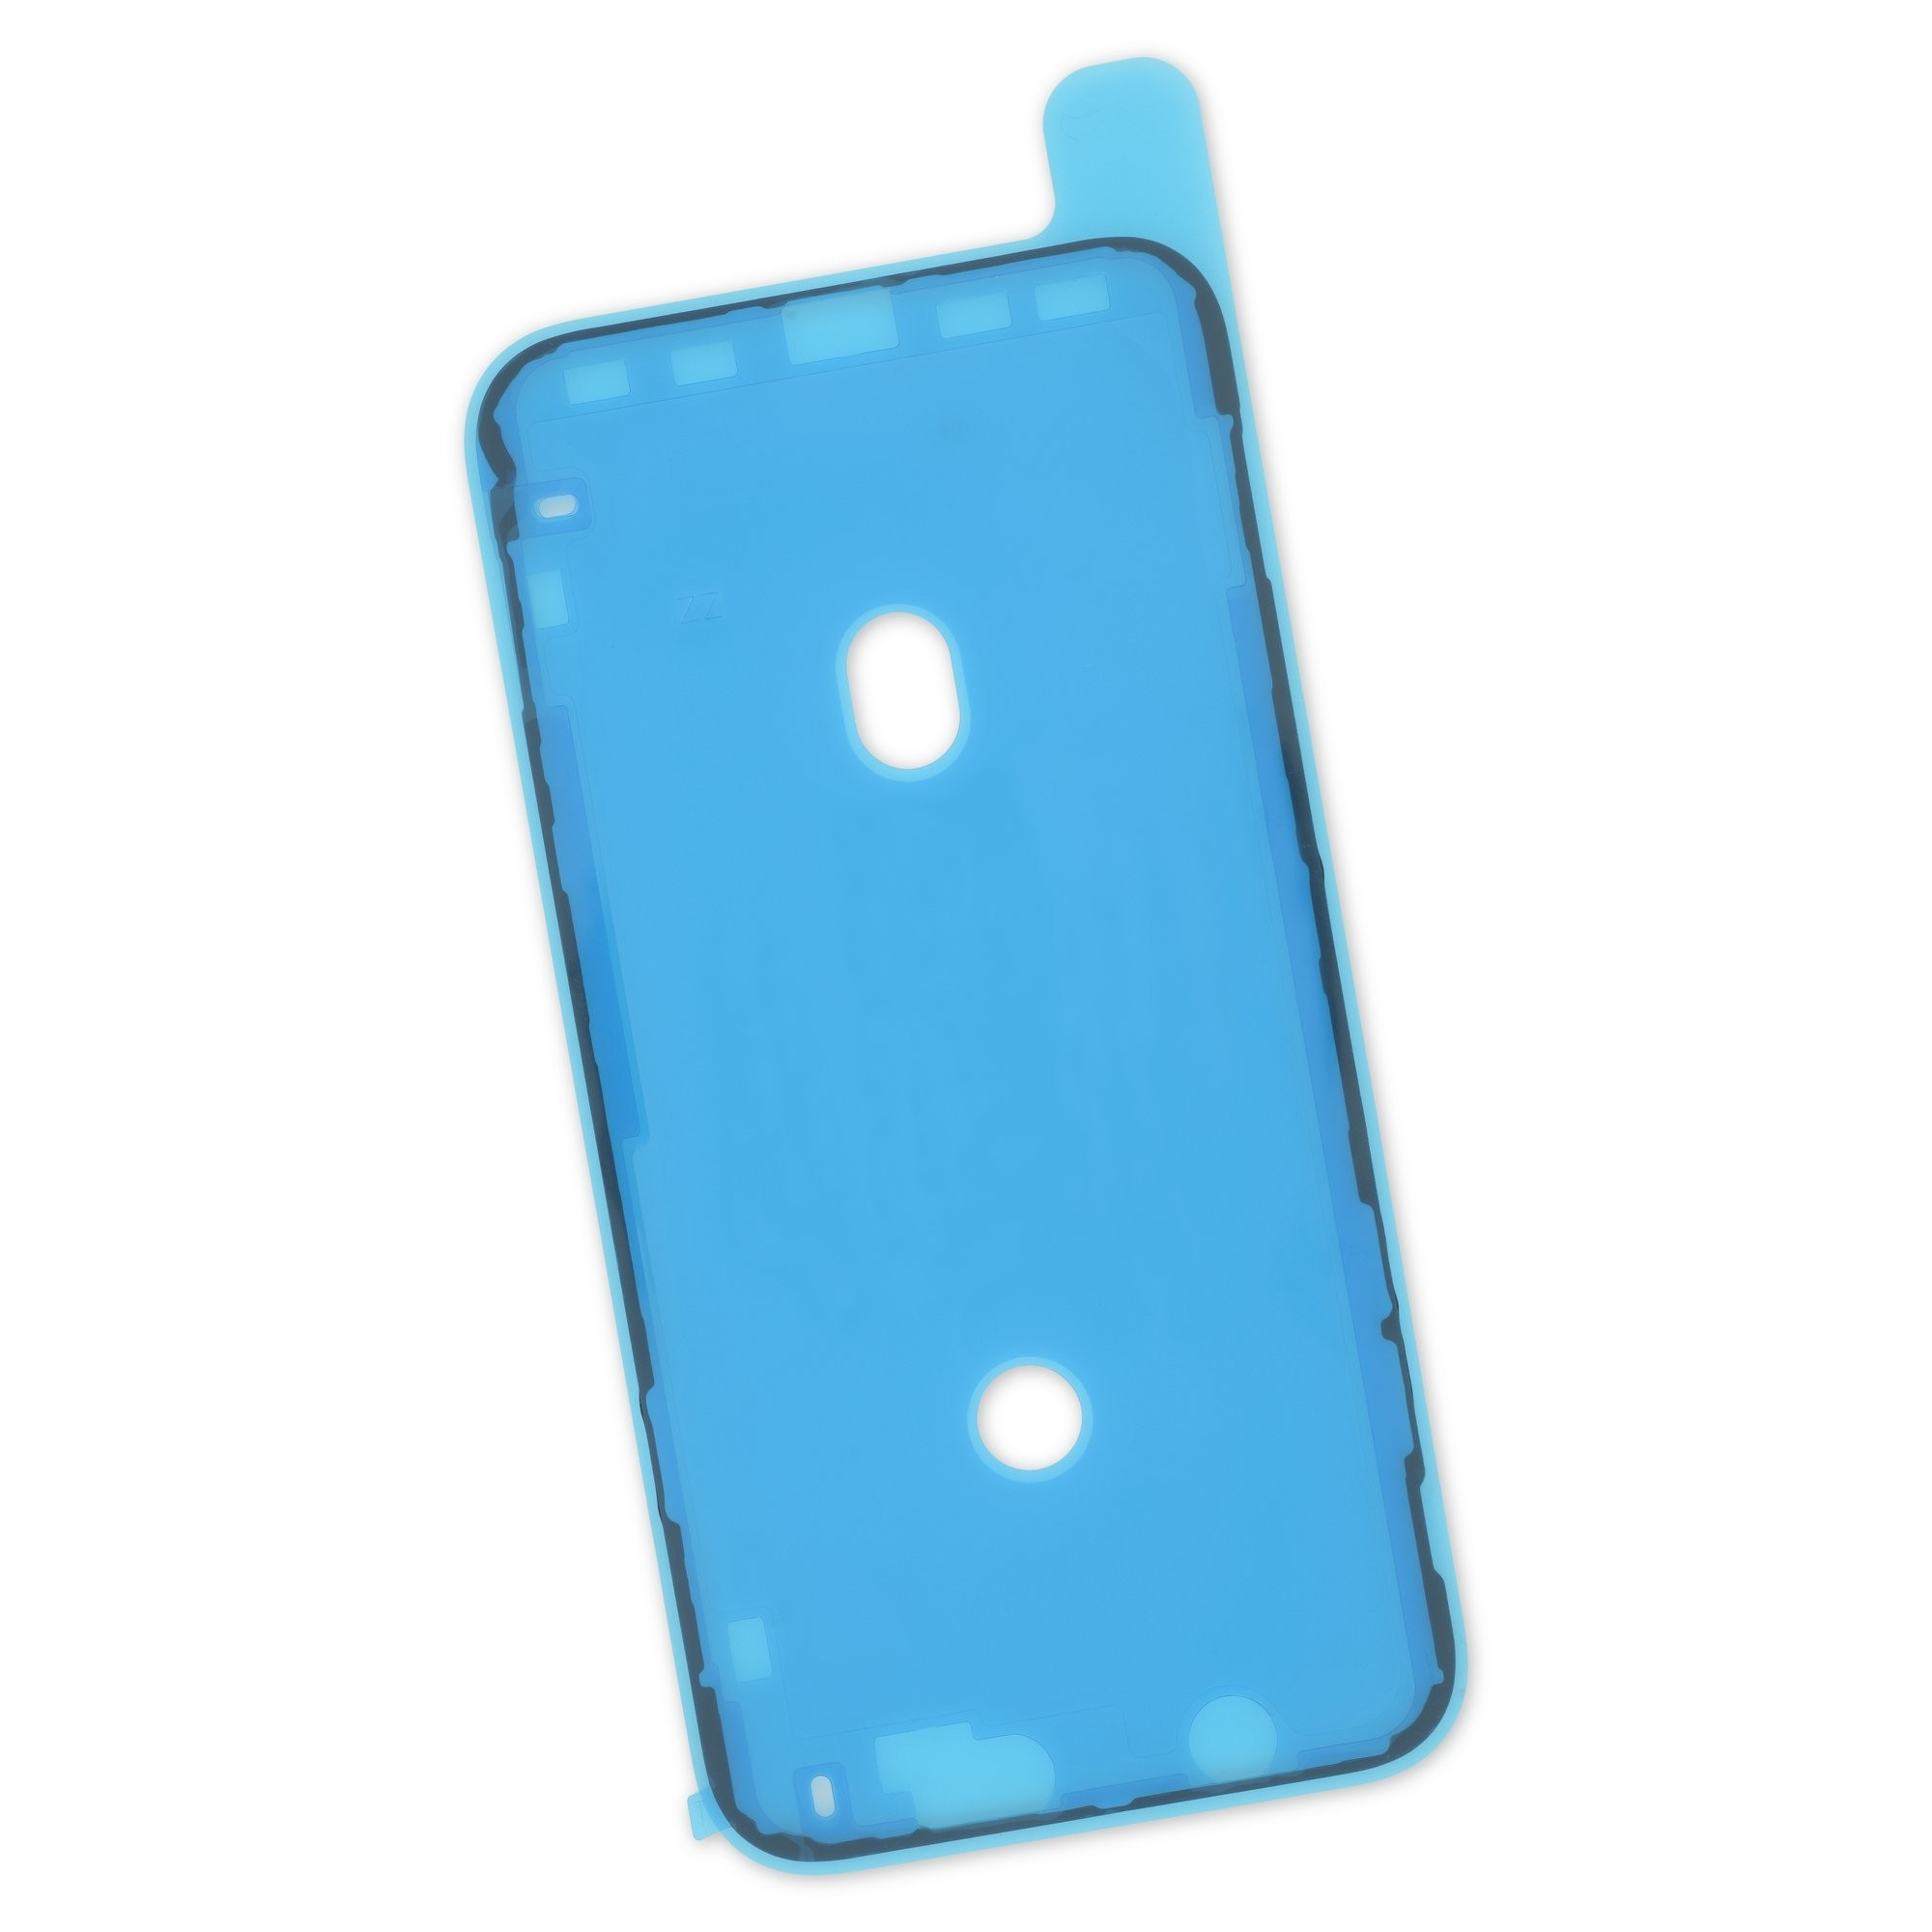 iPhone XR Display Assembly Adhesive,  IF408-008-1